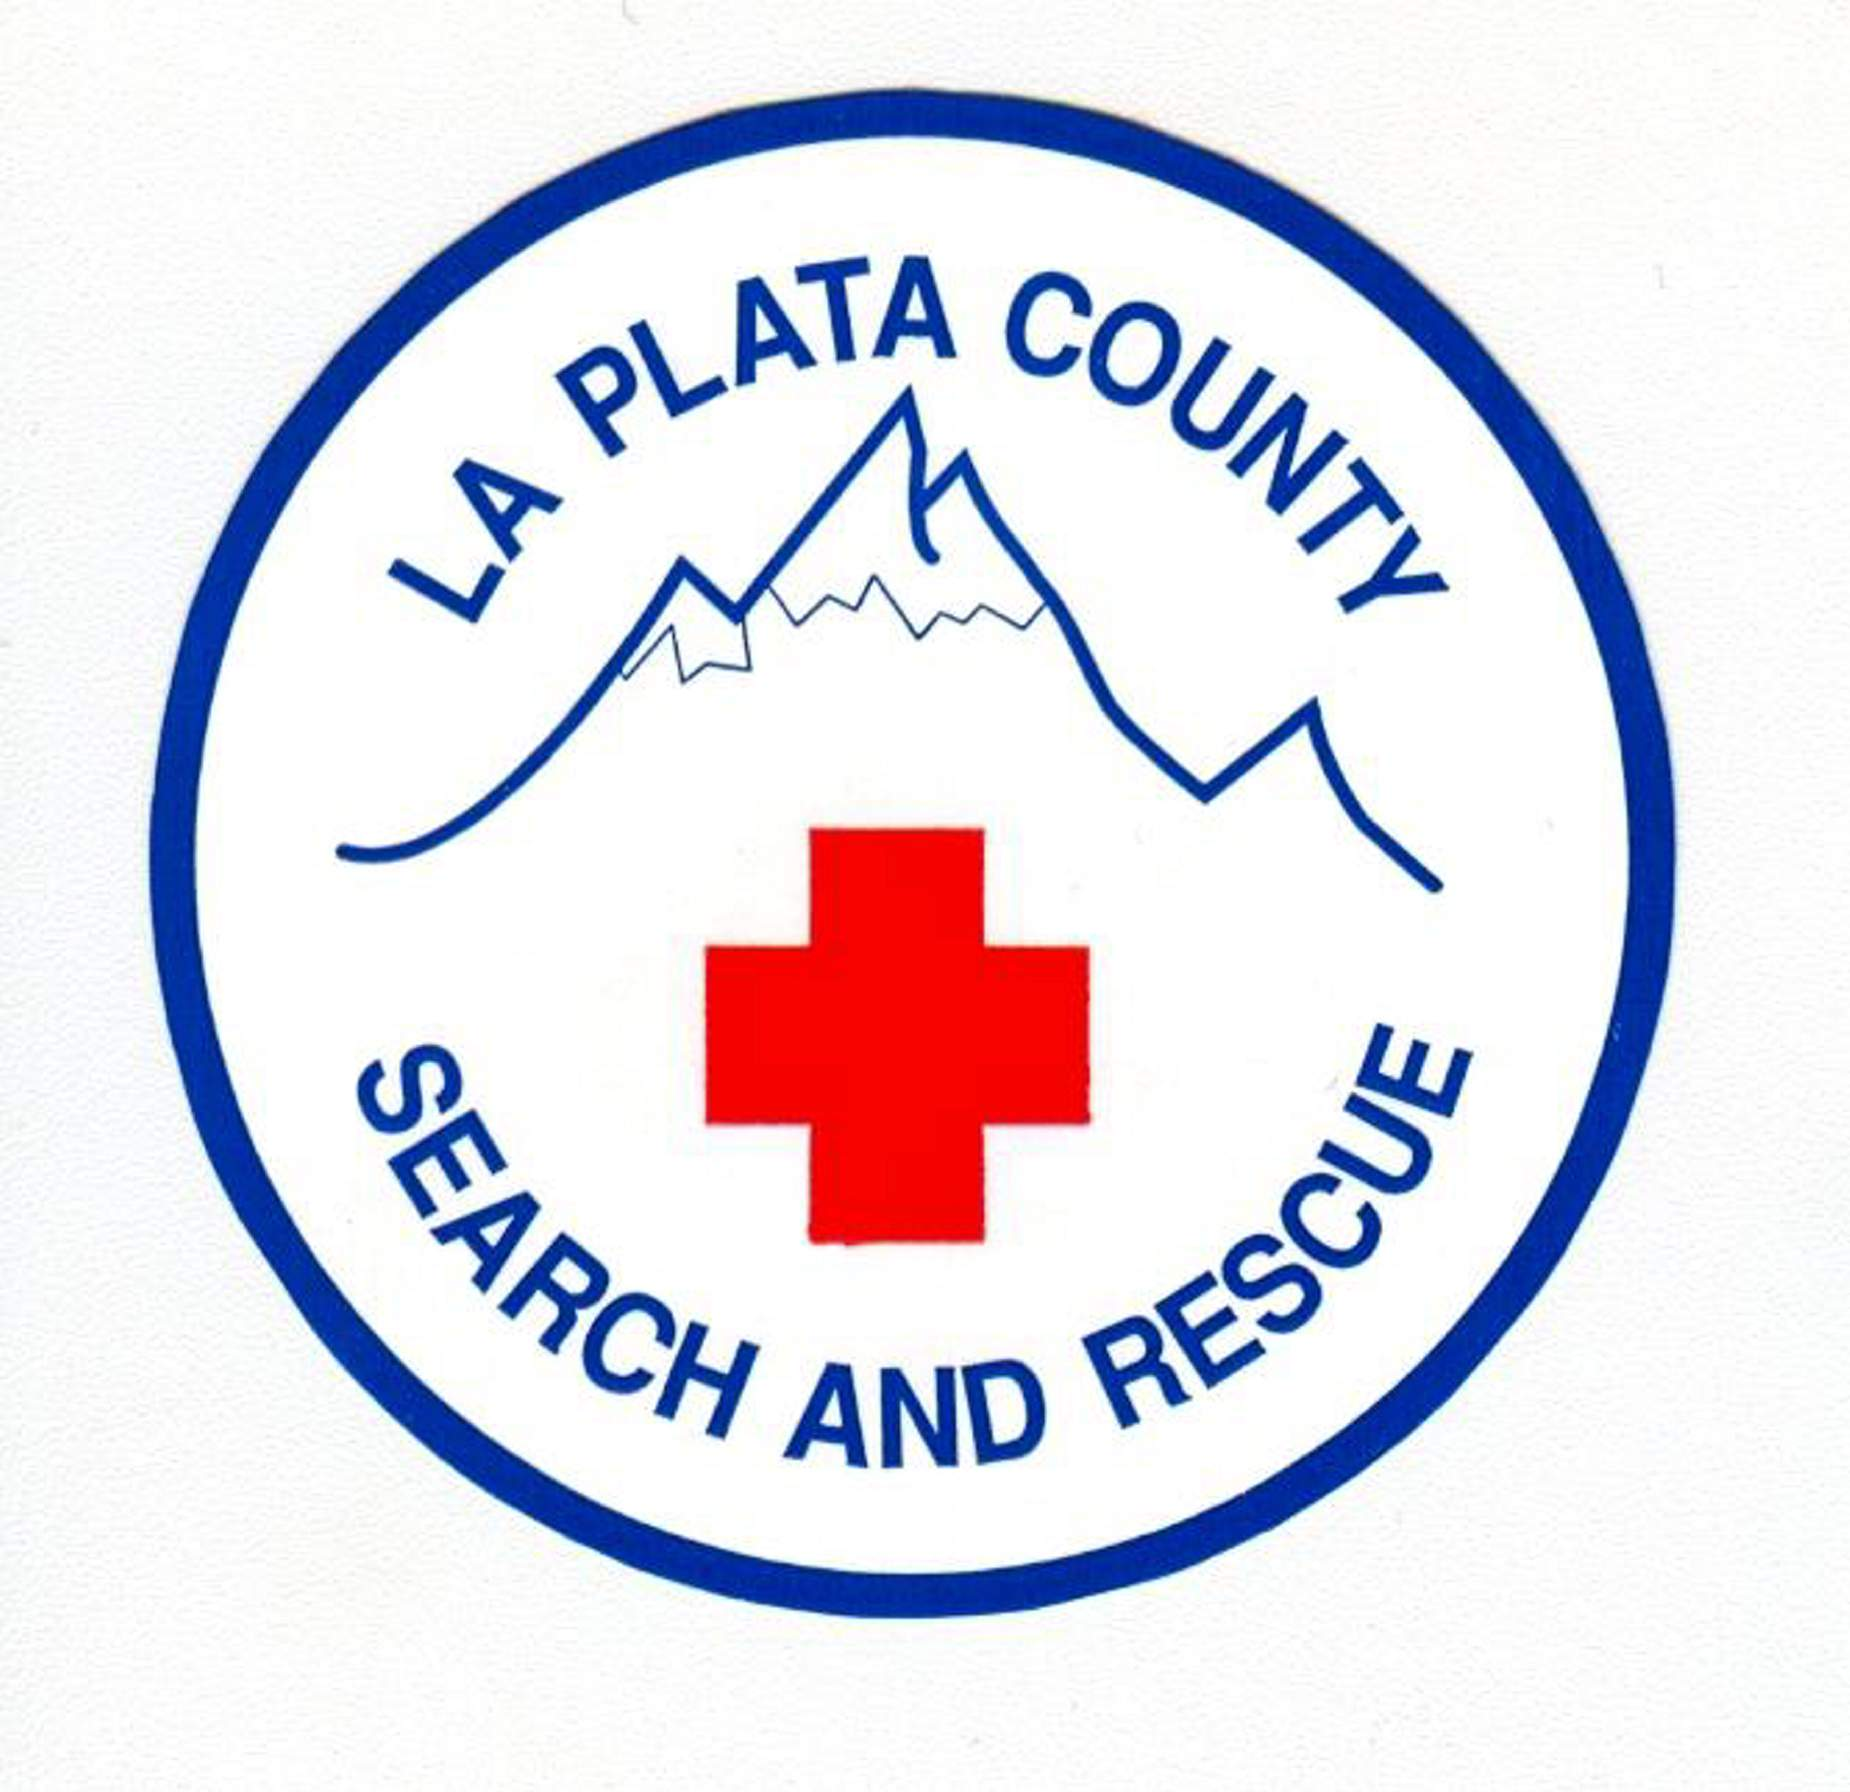 La Plata County Search and Rescue on way to retrieve lost skier